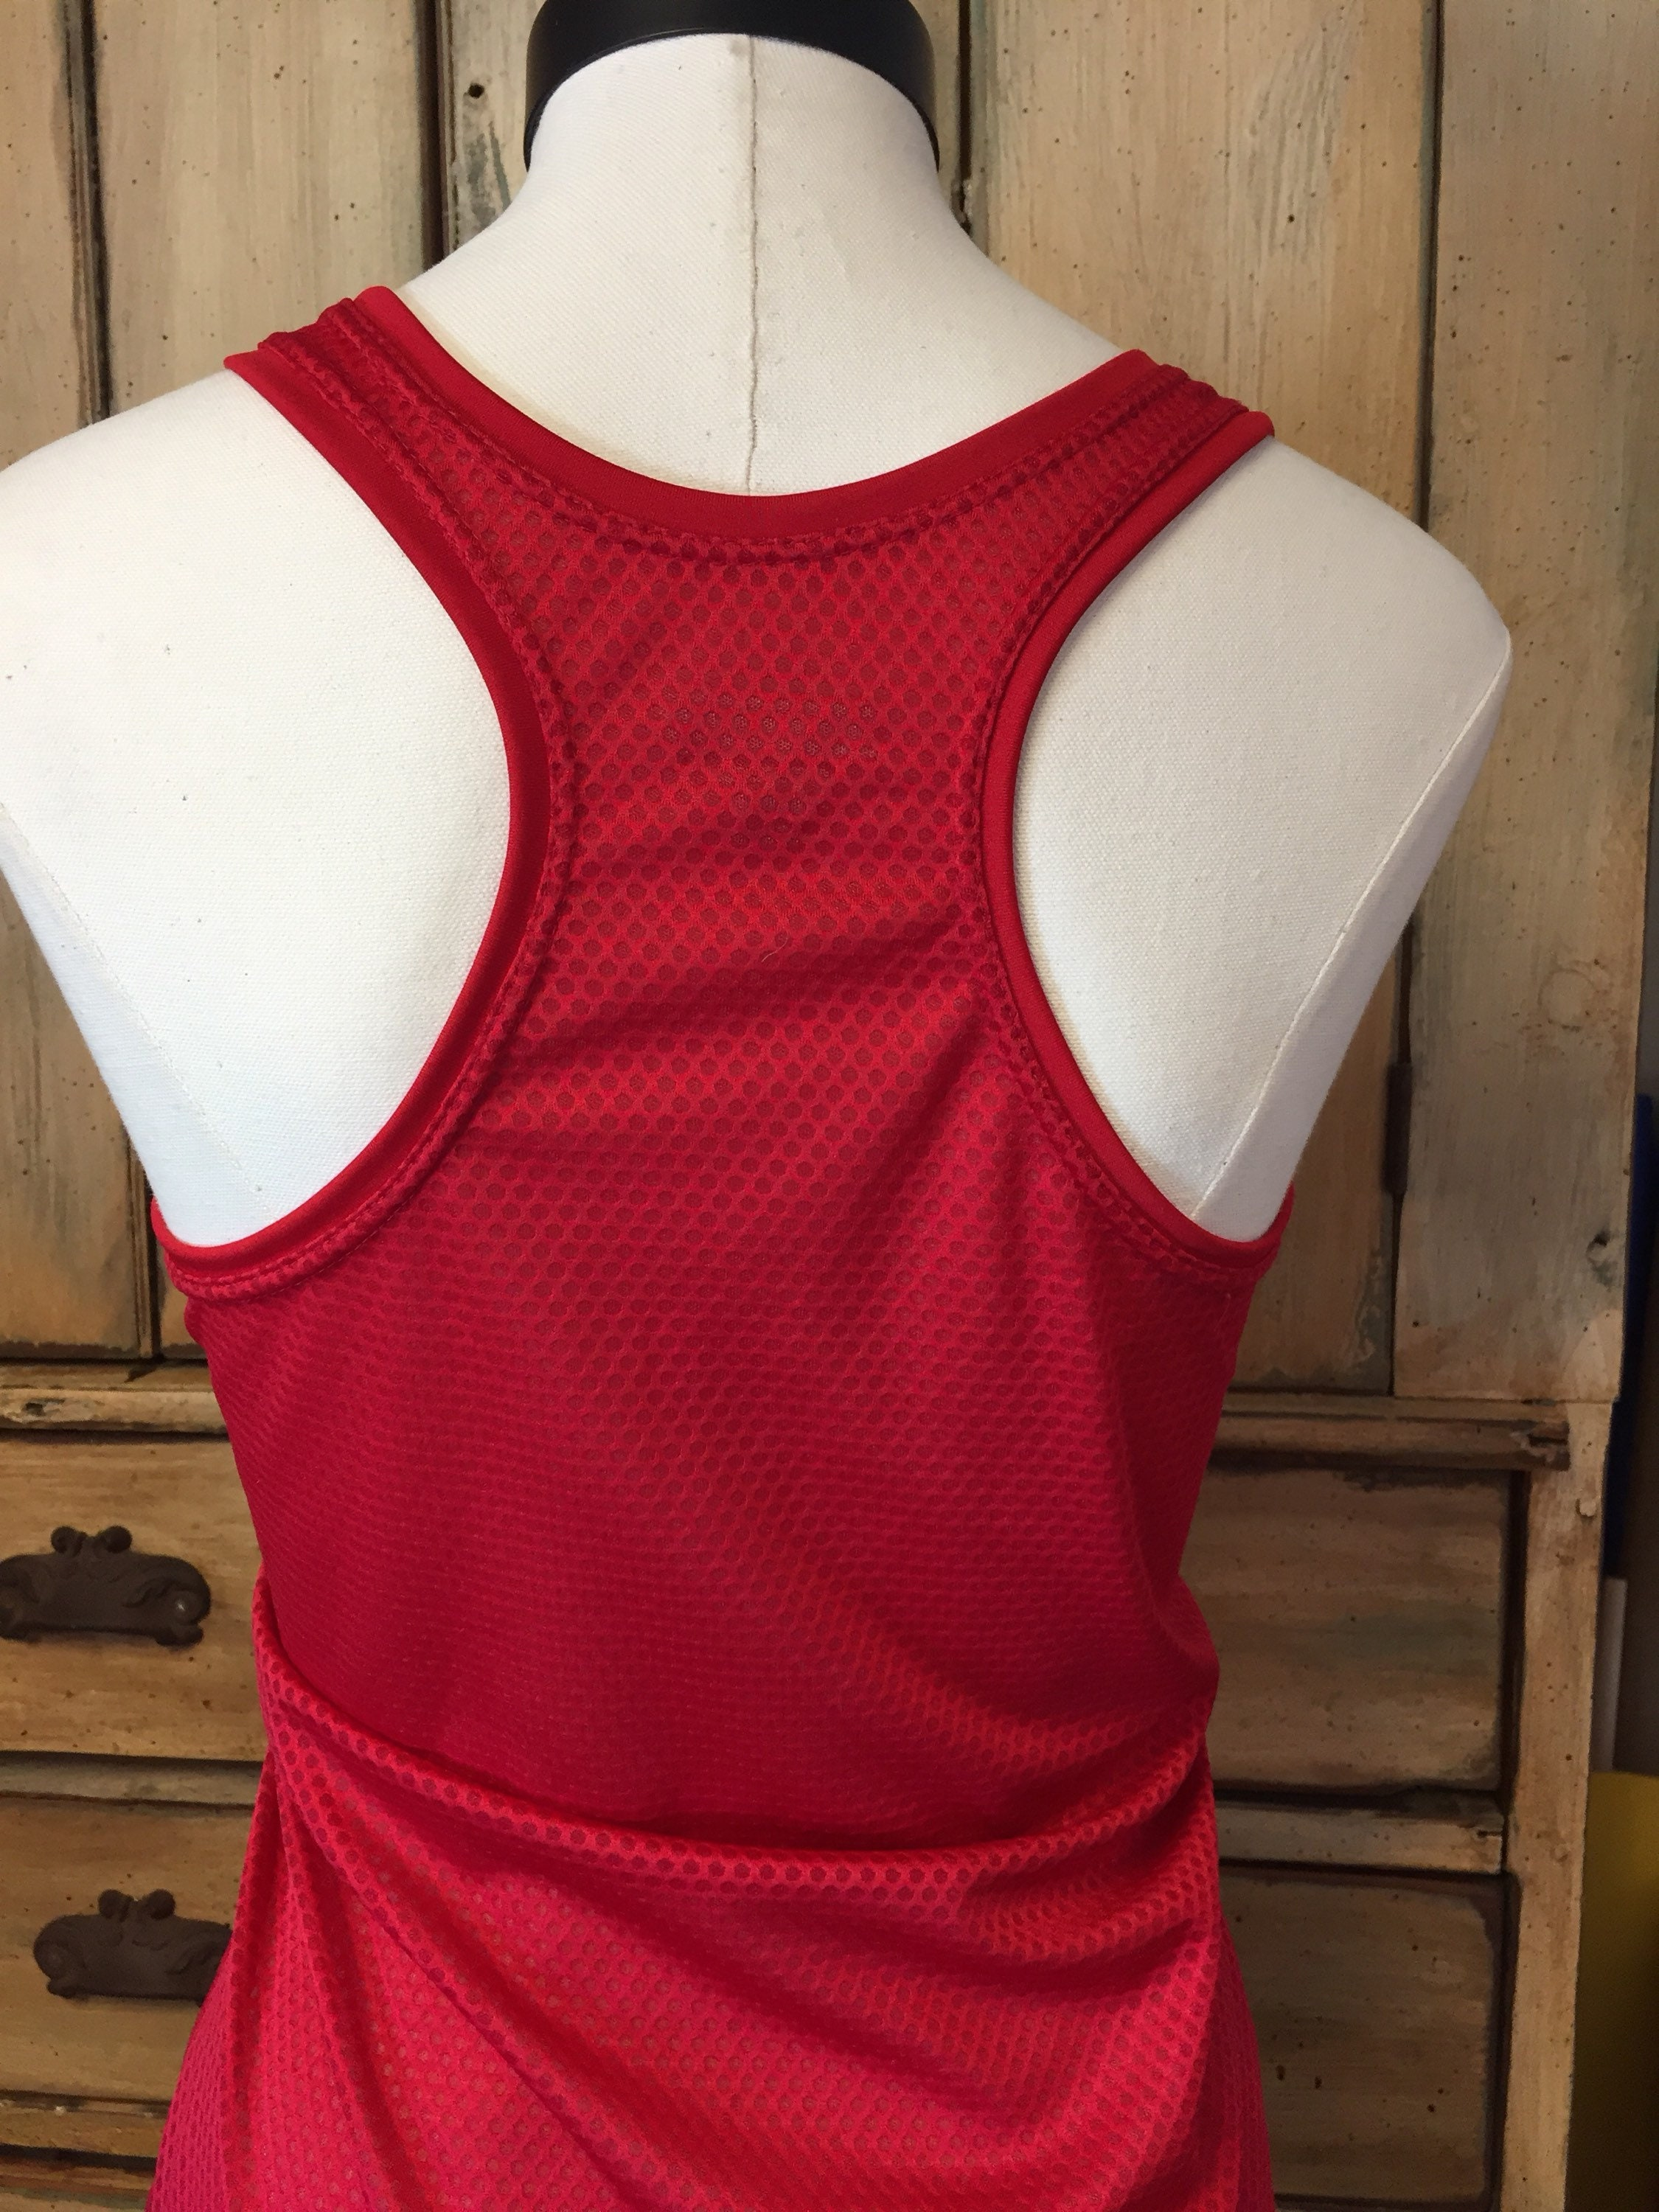 41f1b3f67ca70 ... Running outfit tank singlet tee t-shirt wicking tech fabric disney  superhero half marathon avengers. gallery photo gallery photo gallery photo  gallery ...